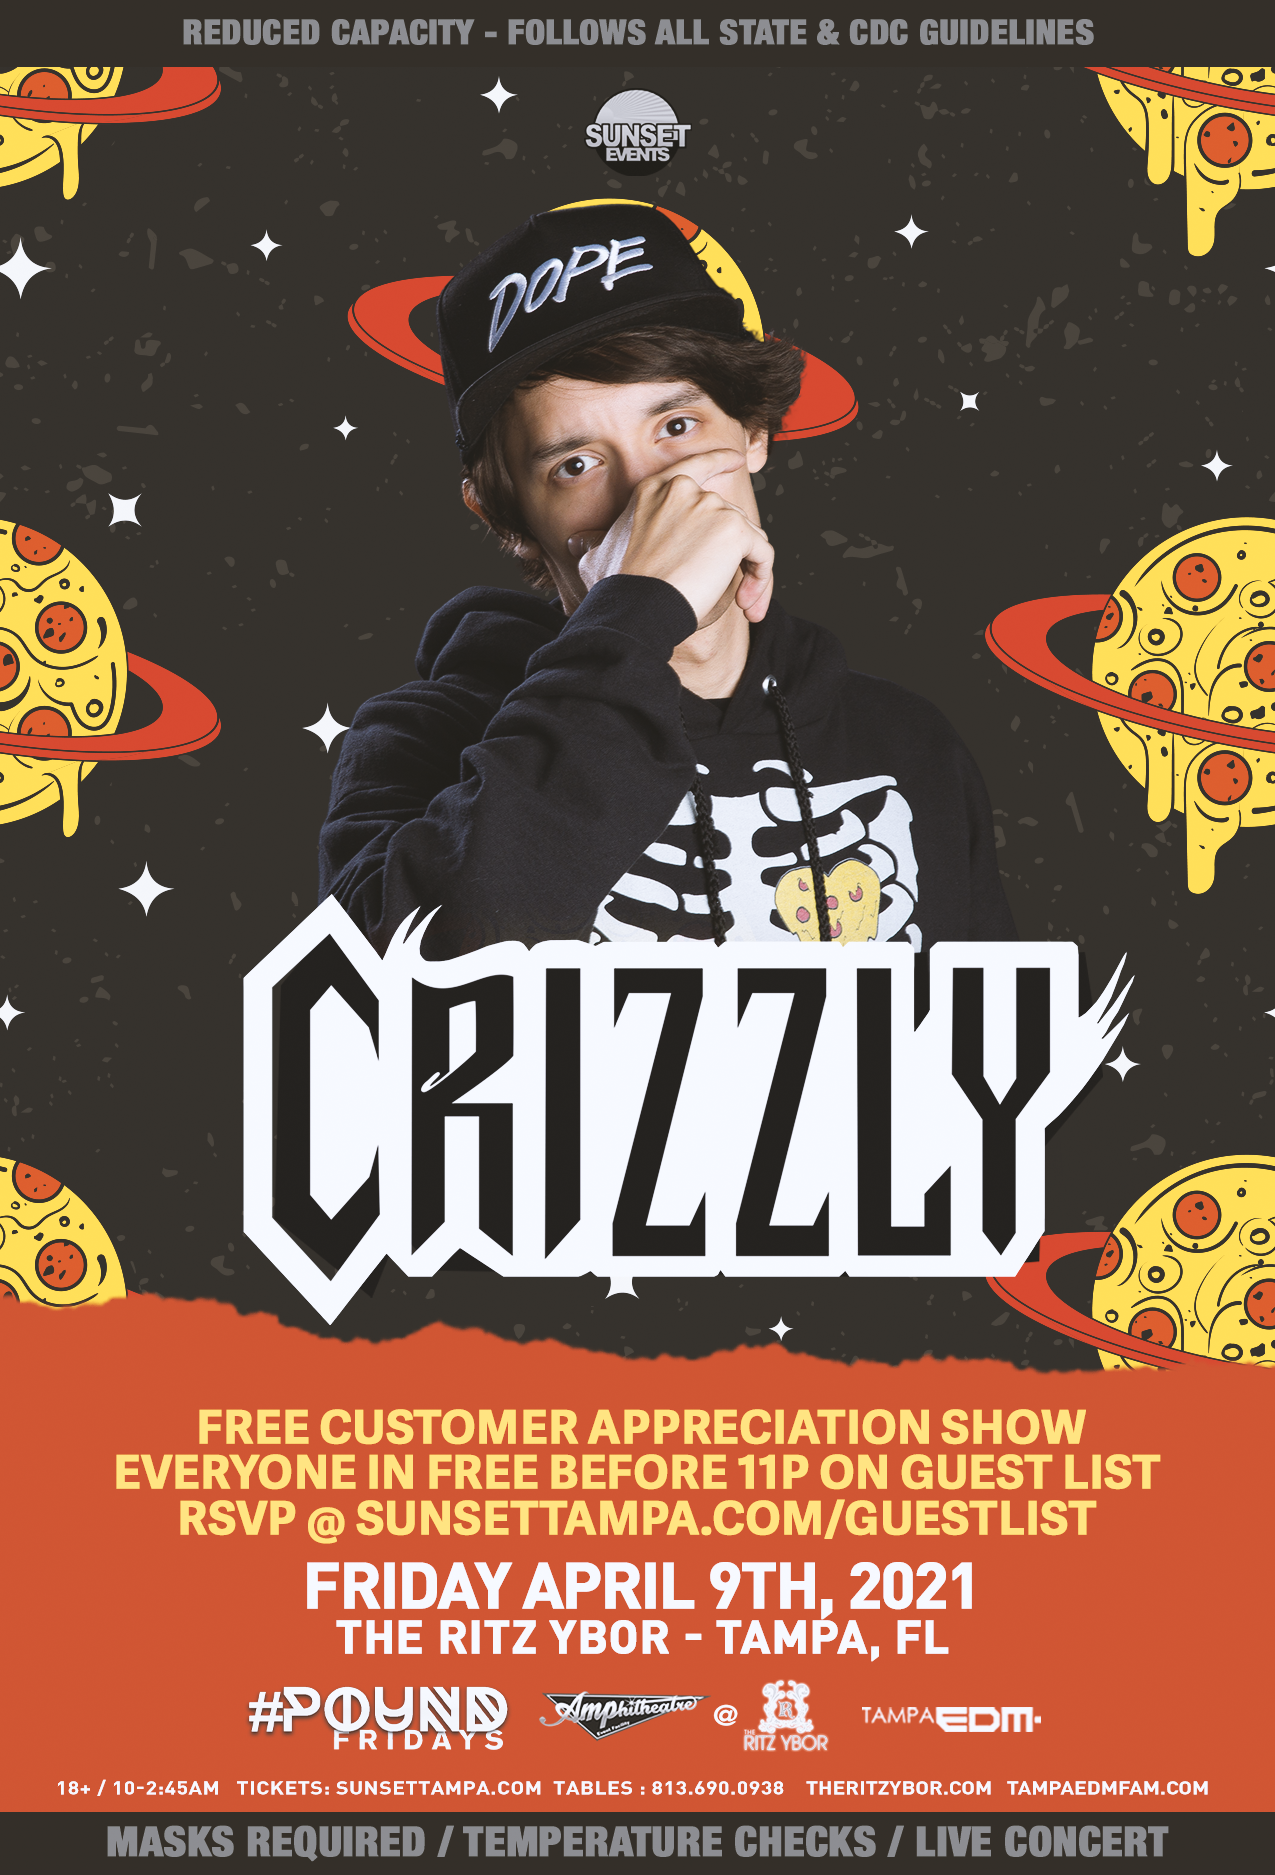 Crizzly for #Pound Fridays at The RITZ Ybor – 4/9/2021